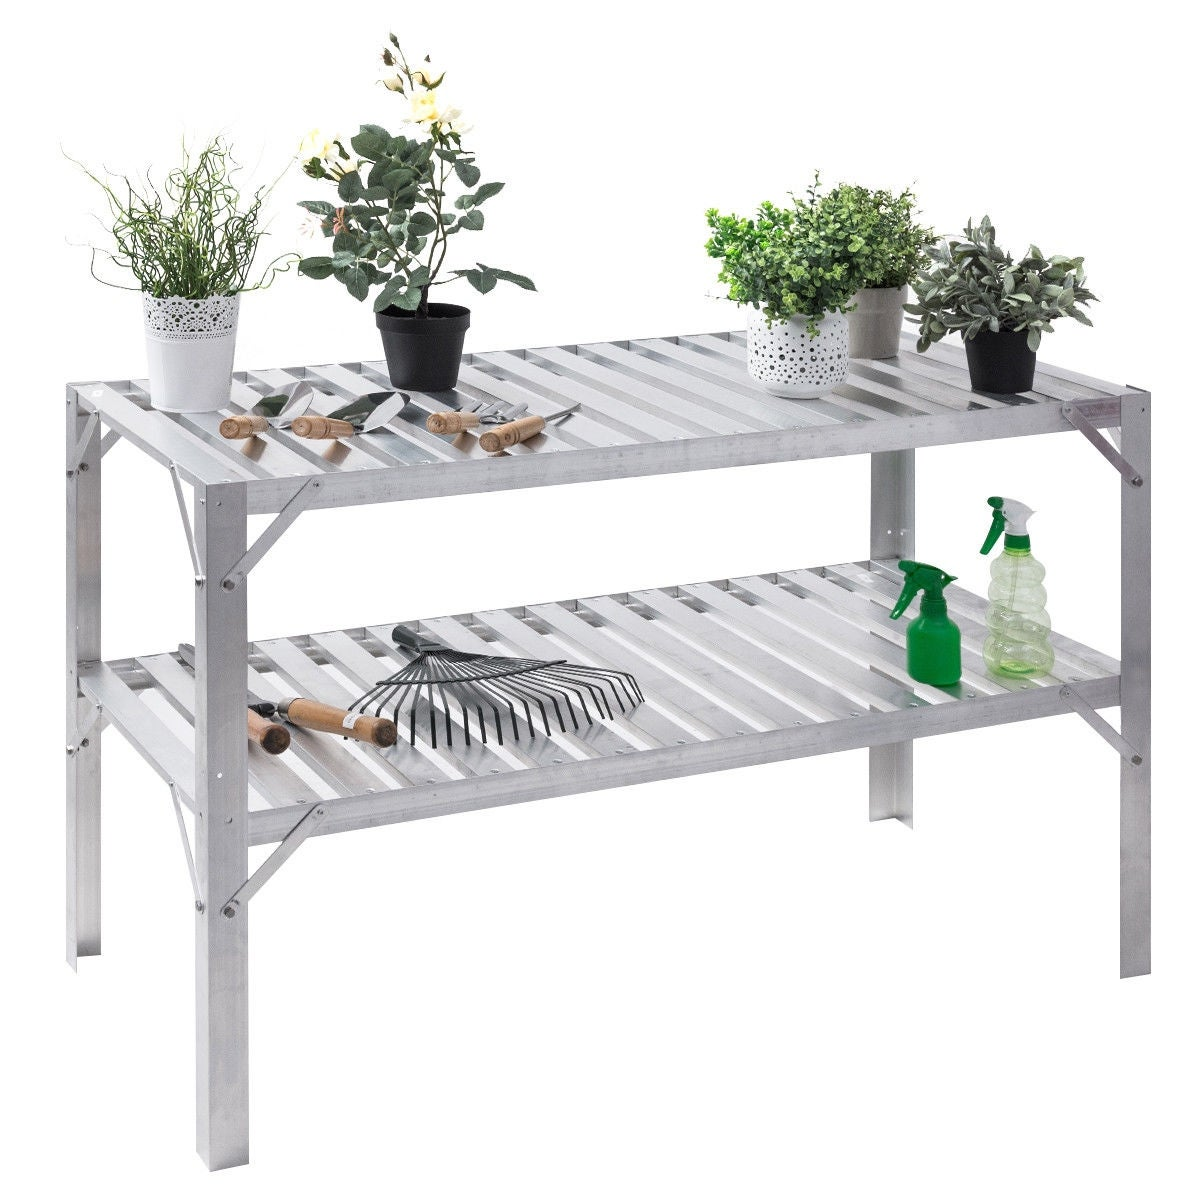 New Potting Table Wooden Plant Bench Lightweight Flower Staging Bench Greenhouse